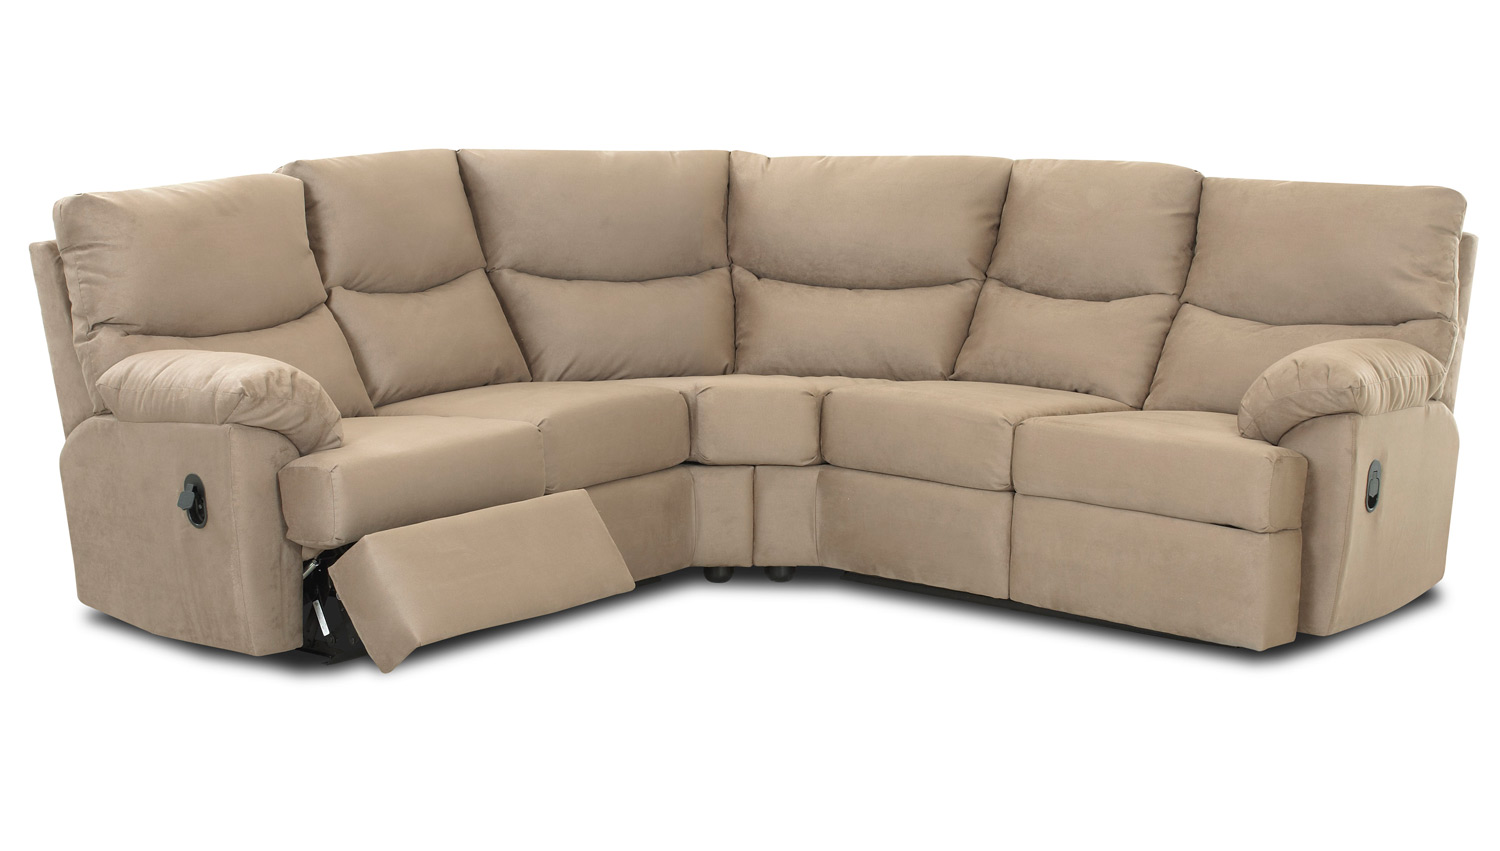 Microsuede Sectional Sofa 28 Images Abbyson Living Delano Microsuede Sectional Sofa With